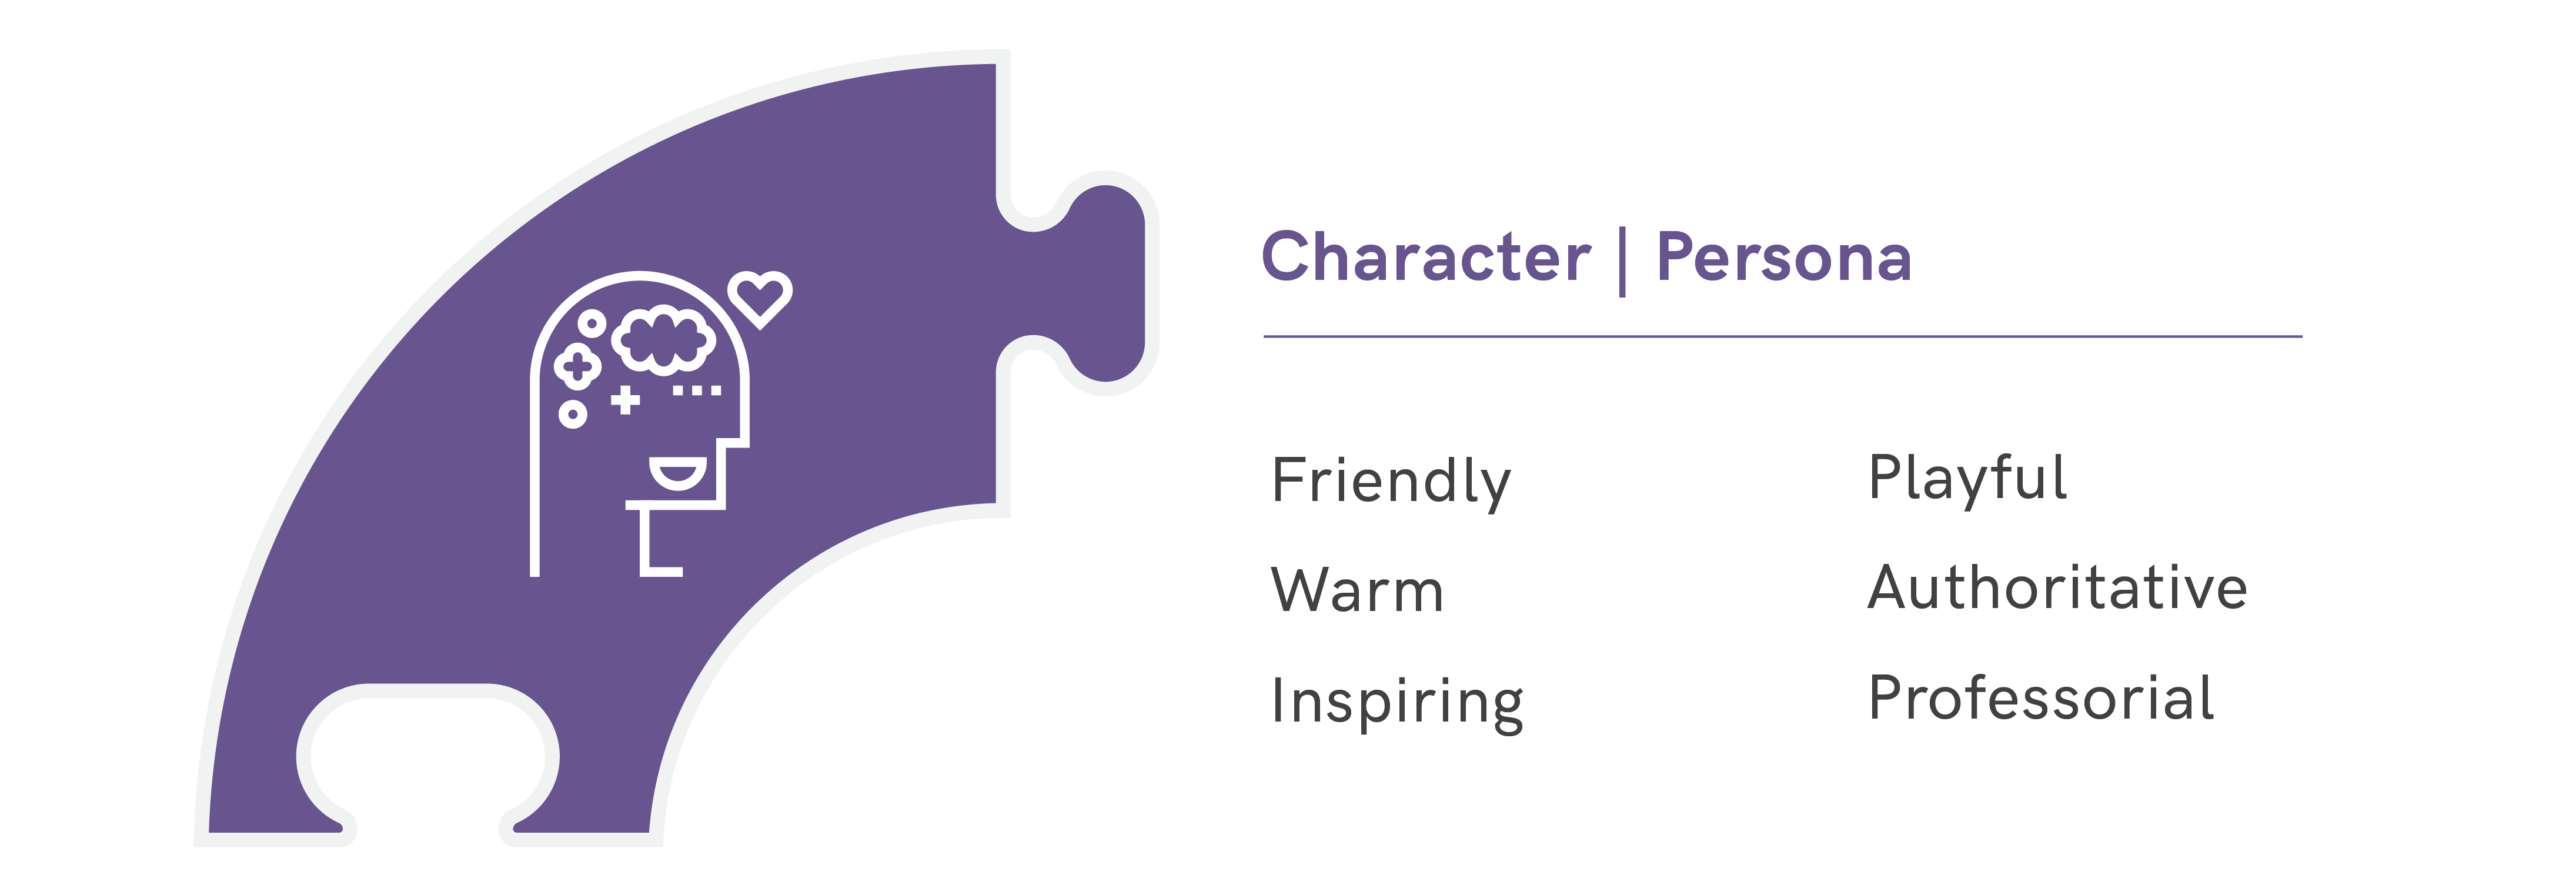 brand character persona